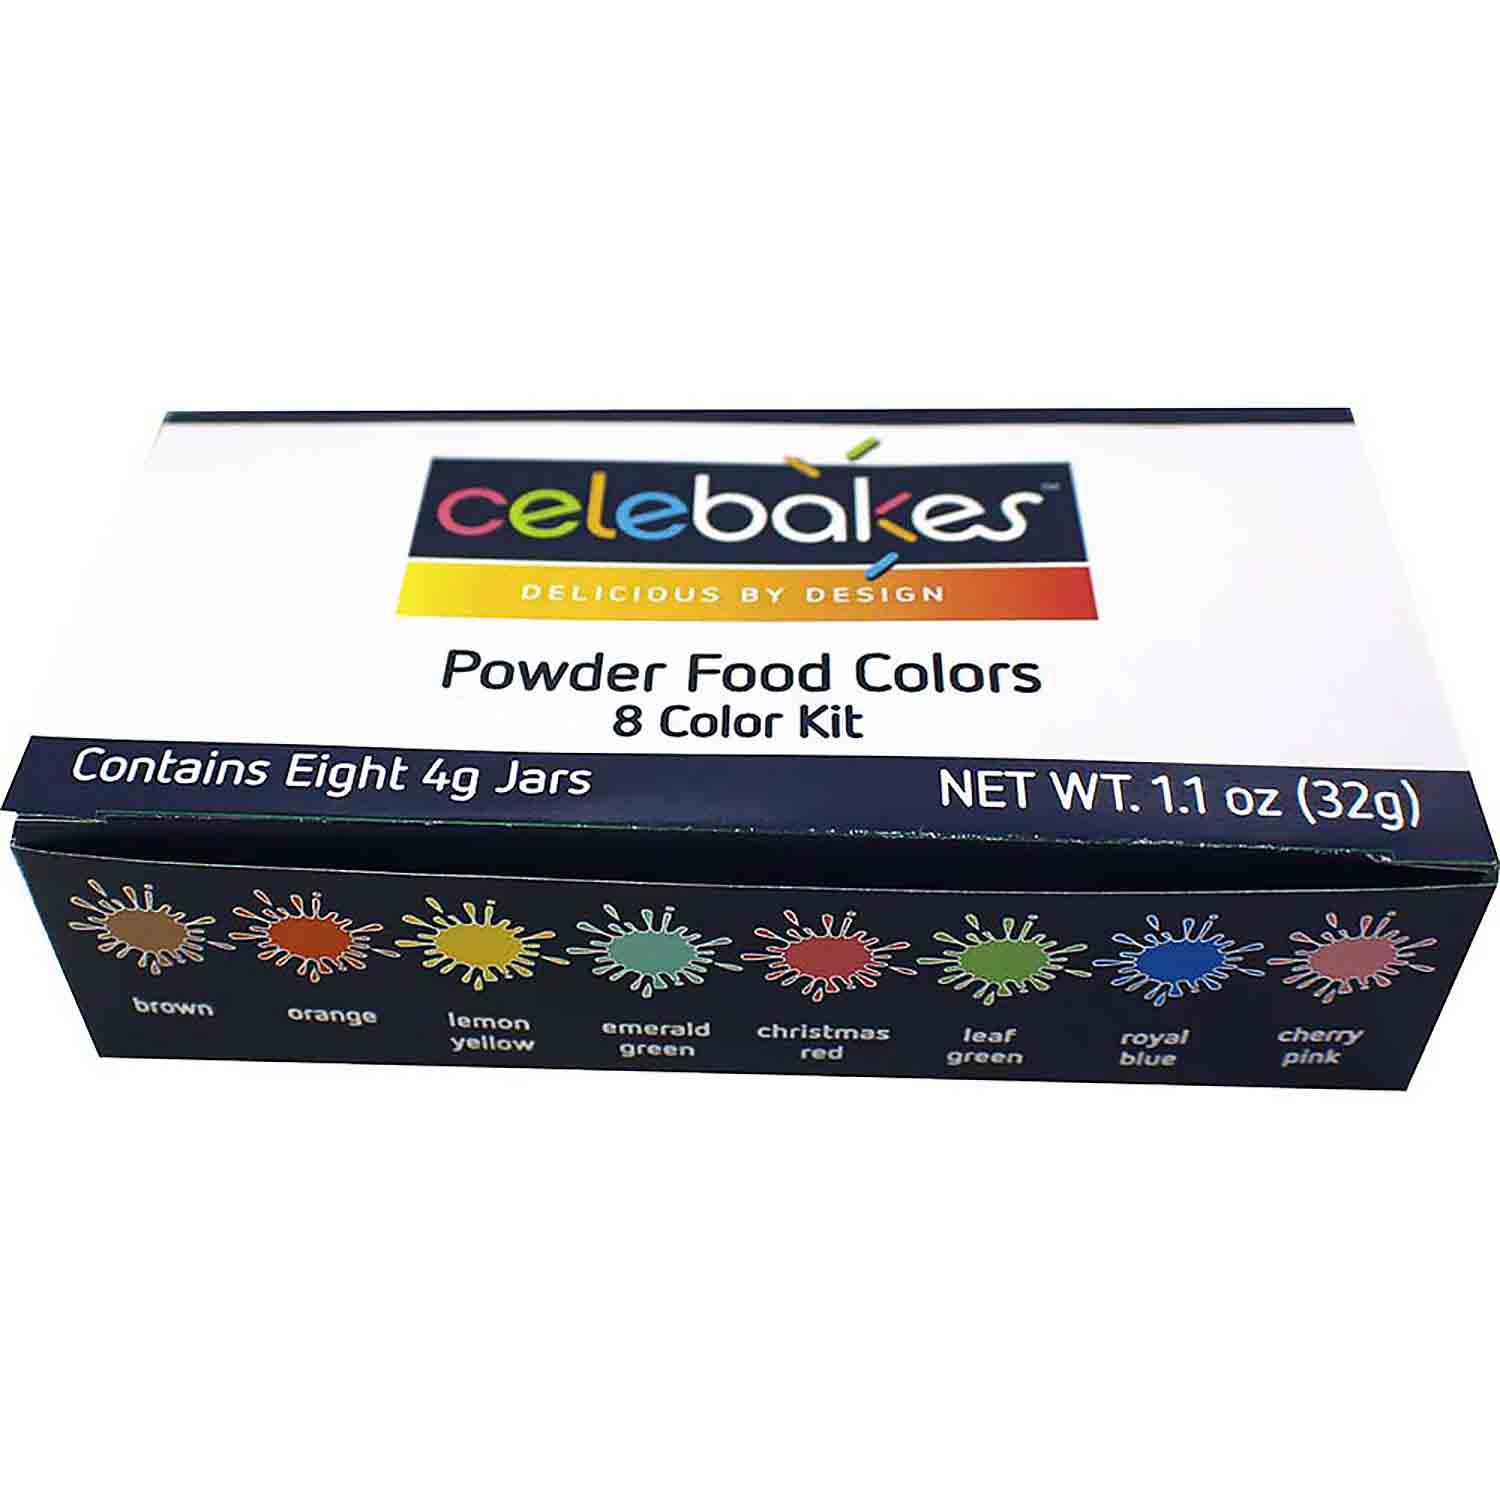 Celebakes™ Powder Food Color Kit